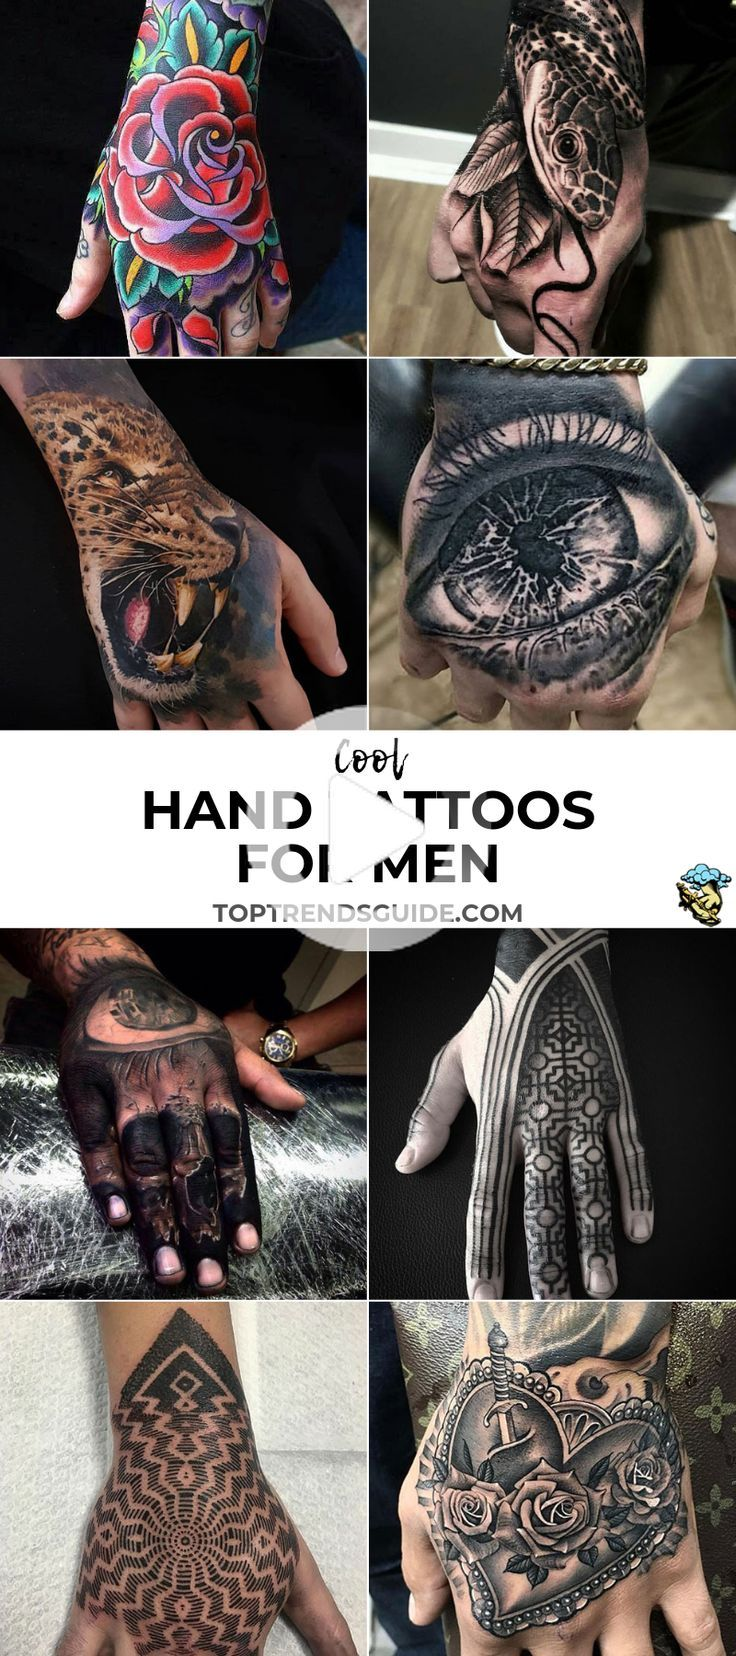 Cool Hand Tattoos For Men Best Hand Tattoo Ideas Badass Hand Tattoo Designs For Guys Simple Top Back In 2020 Hand Tattoos For Guys Hand Tattoos Tattoos For Guys